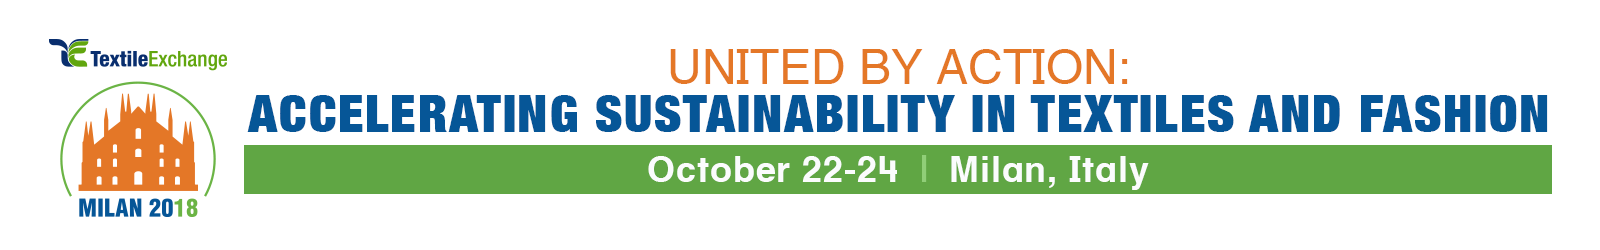 2018 Textile Sustainability Conference